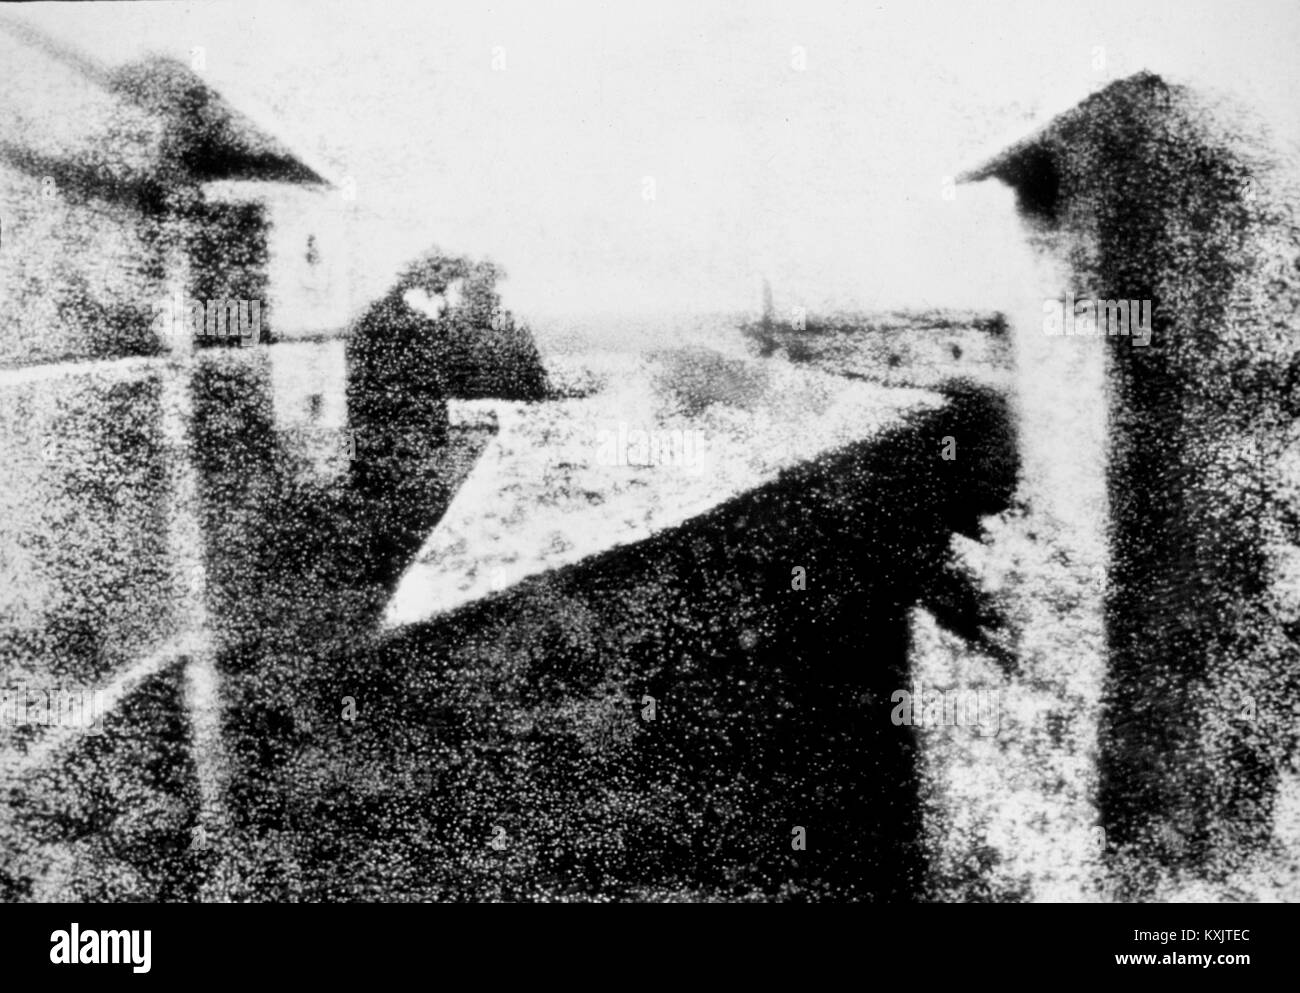 Niépce's View from the Window at Le Gras (1826 or 1827), the earliest surviving photograph of a real-world - Stock Image